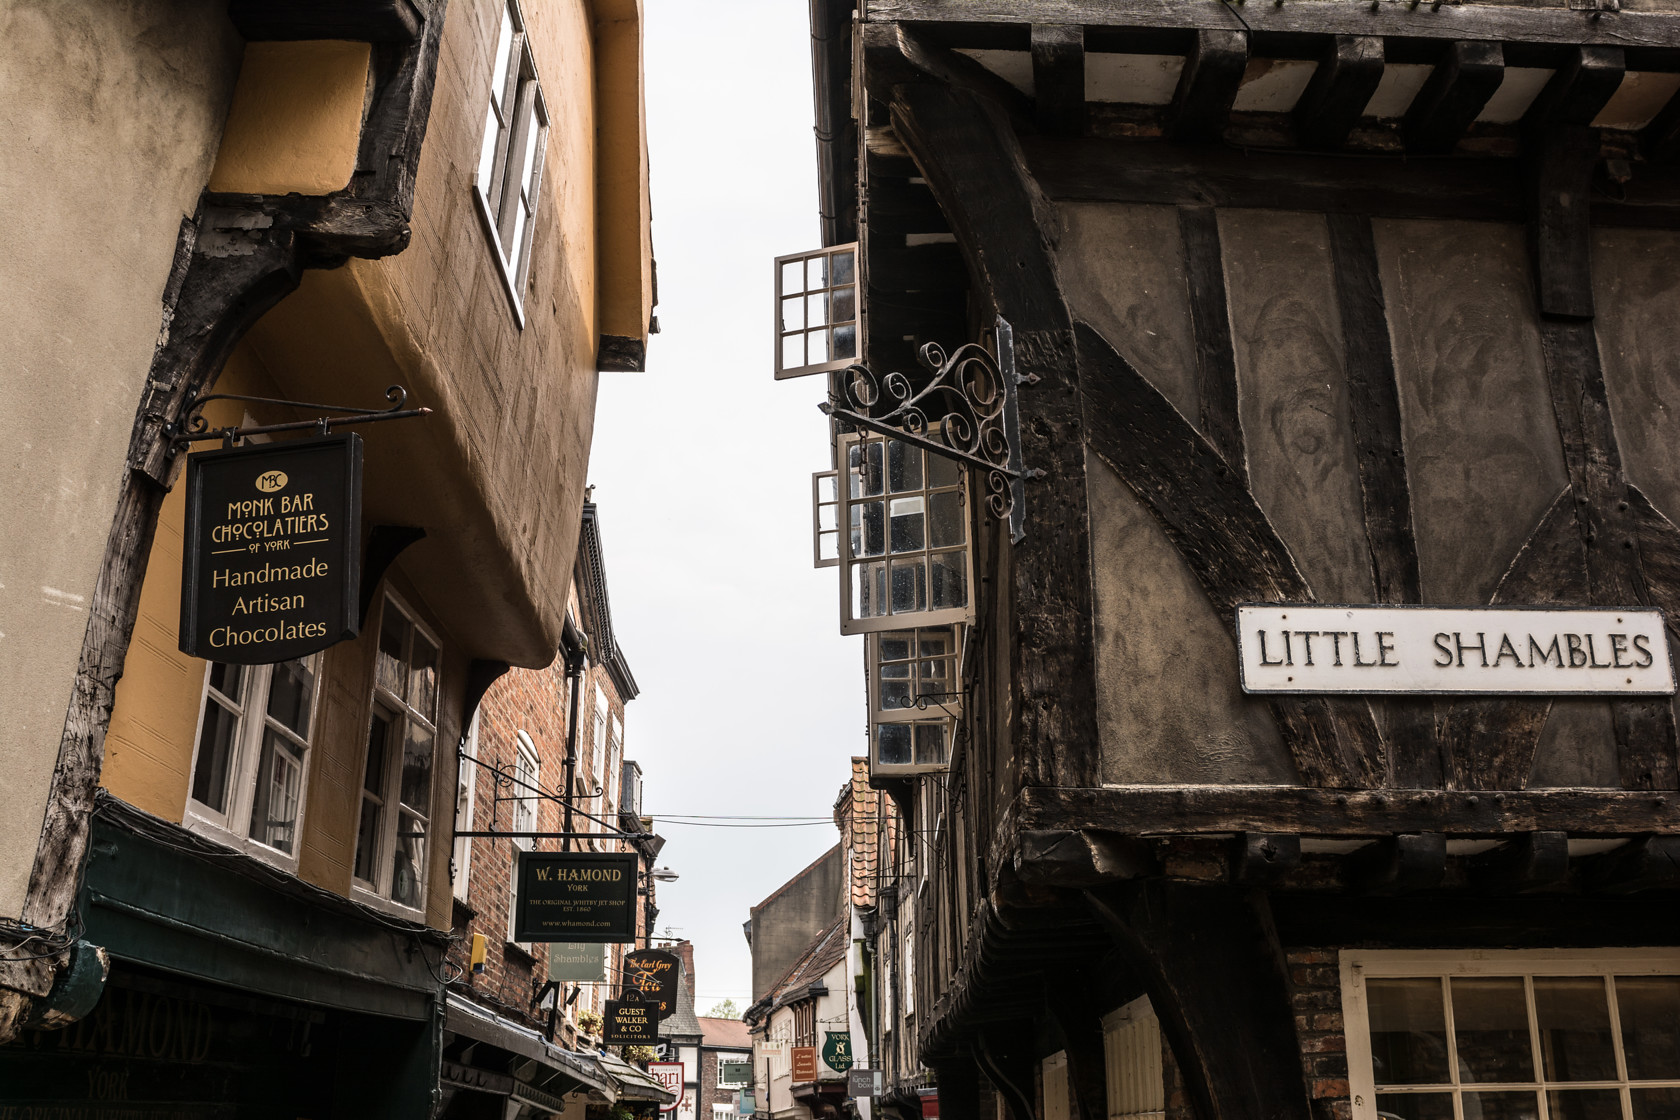 little shambles, york (ref ar 258)